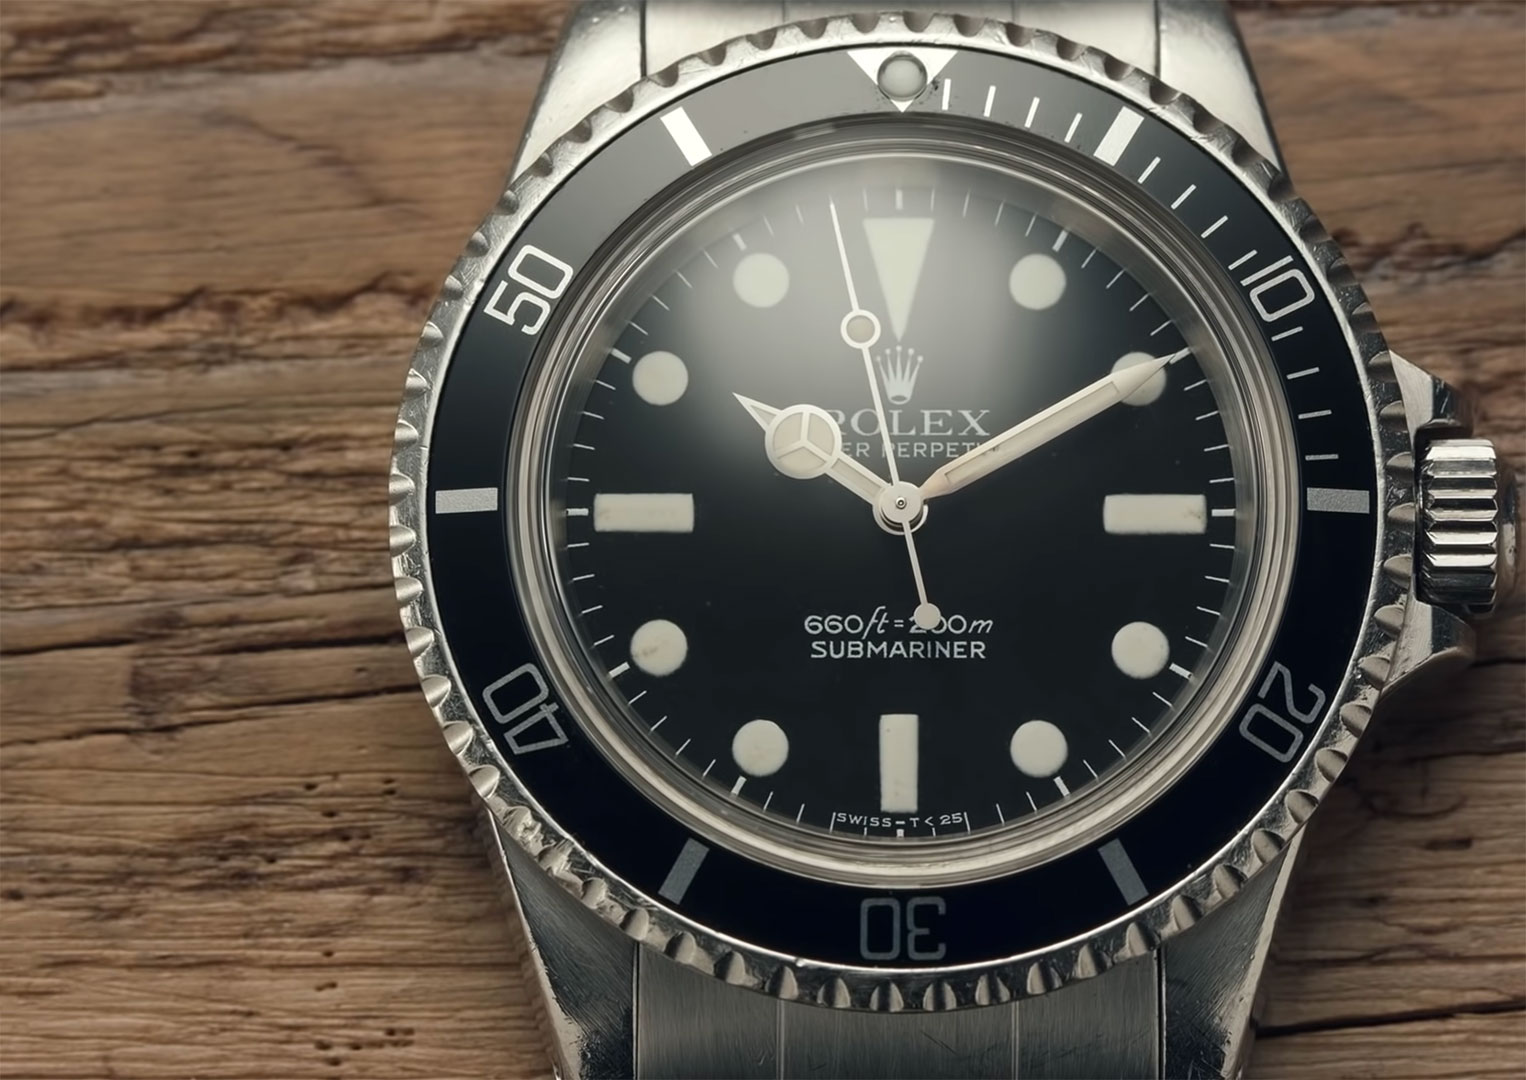 Steve McQueen wore a Heuer—now TAG Heuer—Monaco in the film Le Mans